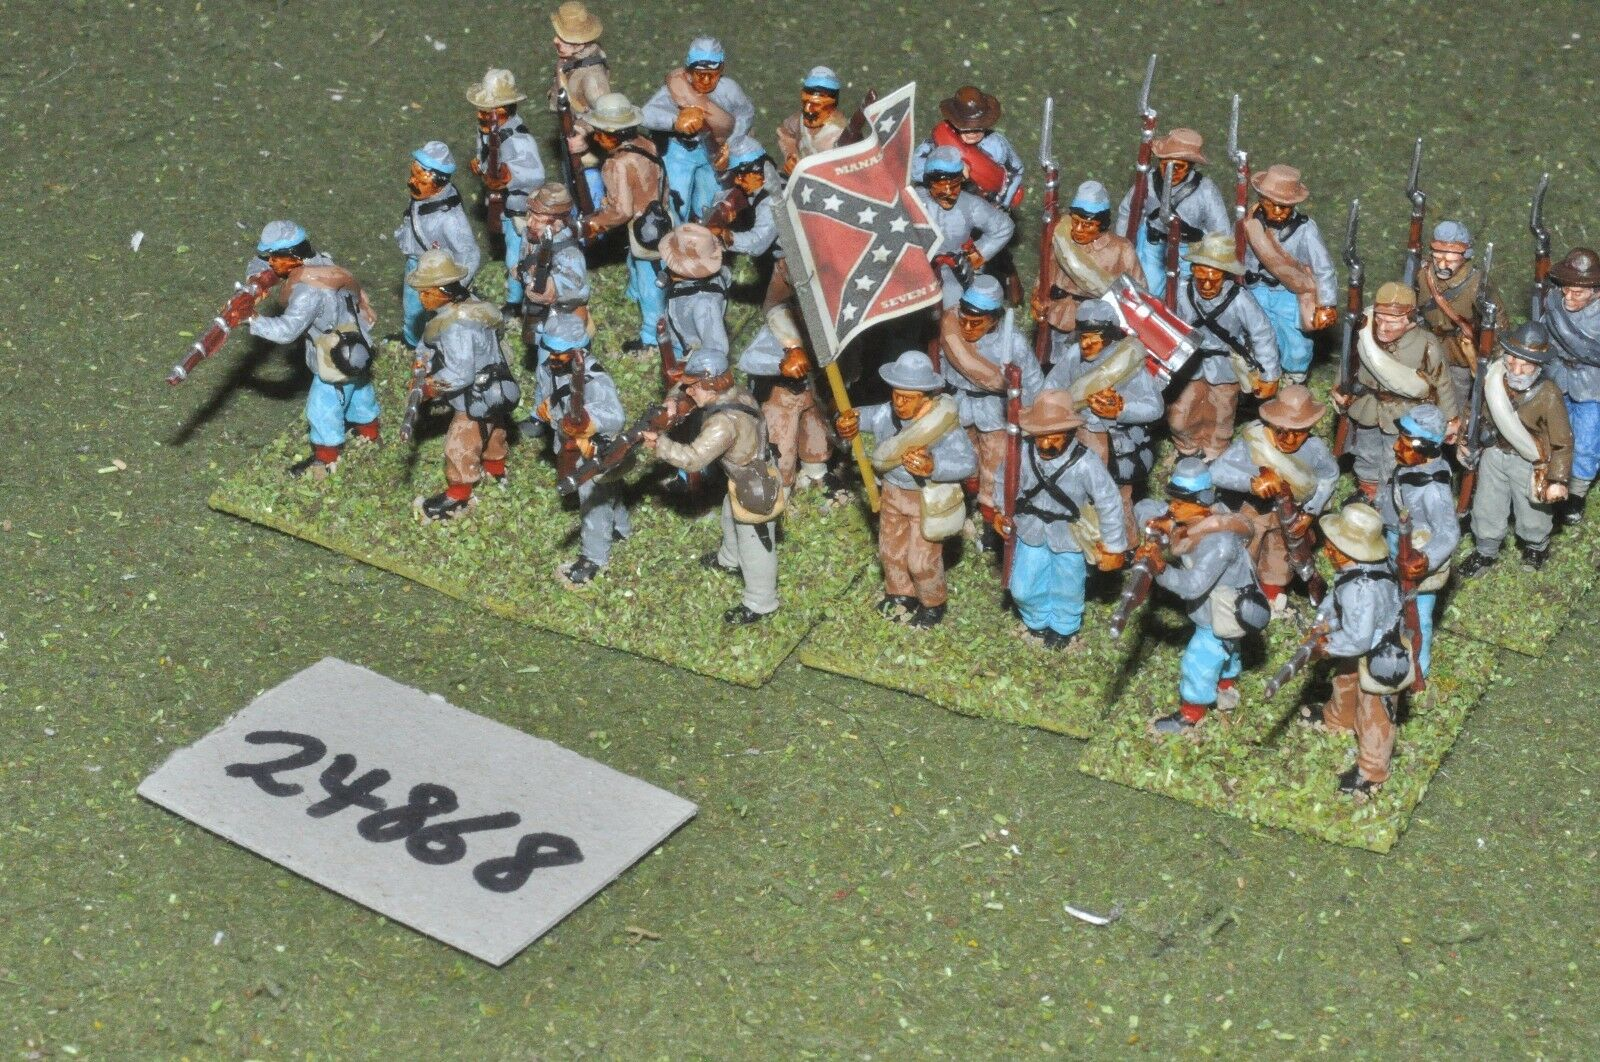 25mm ACW   confederate - regiment (plastic) 32 figures - inf (24868)